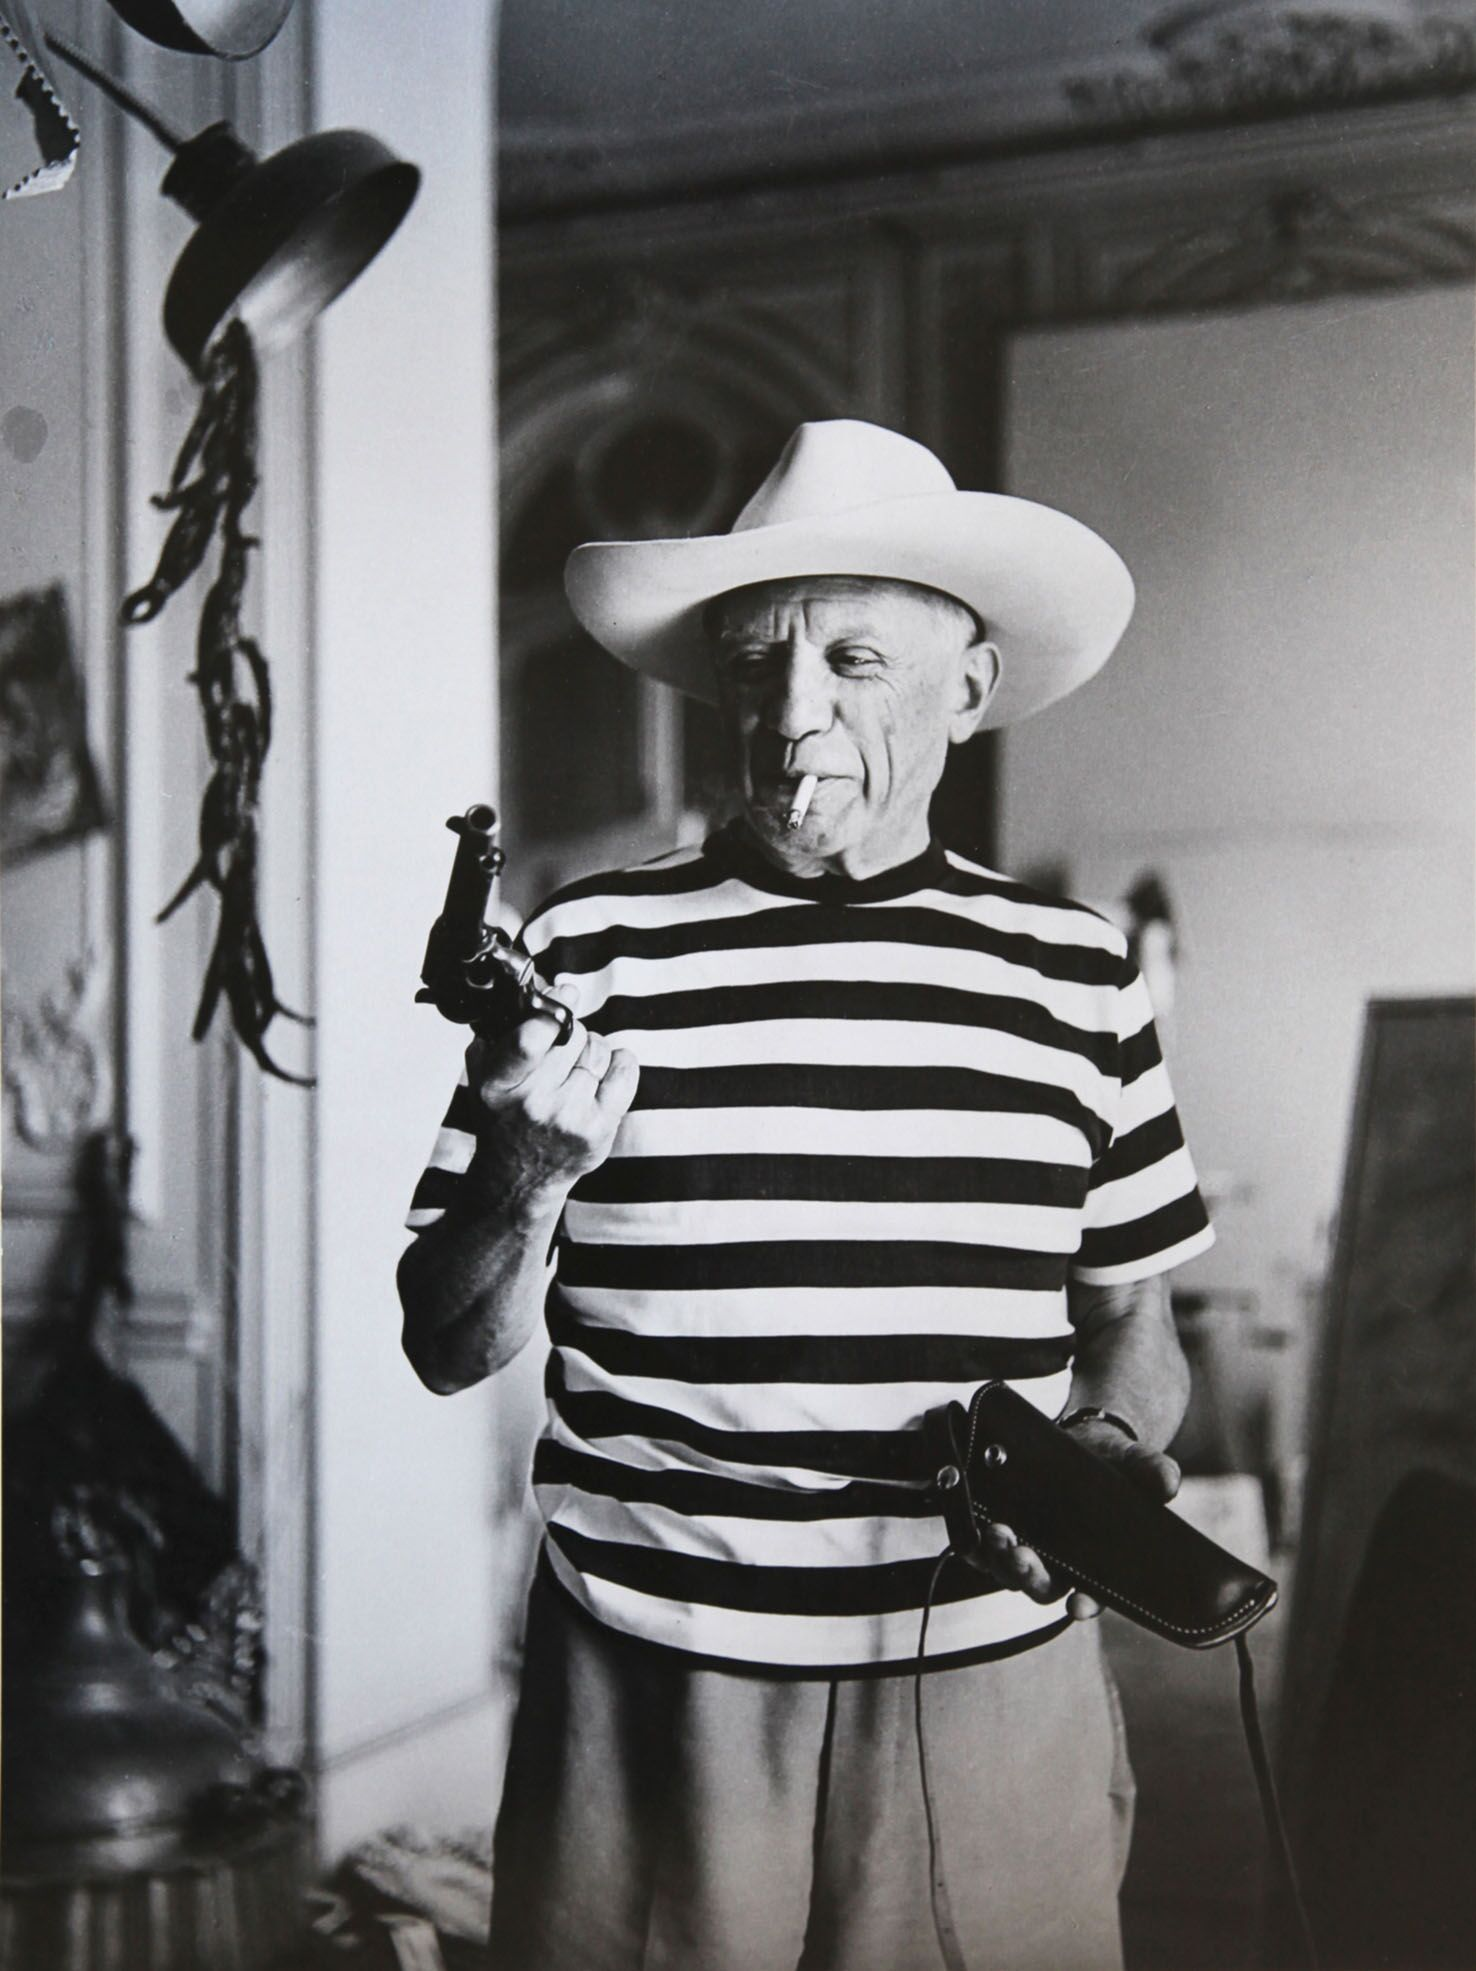 Andre Villers, Picasso with revolver and hat of Gary Cooper, 1959, Printed 2013, Canson fine art print, 110x139cm, edition: No 5/7, Courtesy Suite 59 Gallery